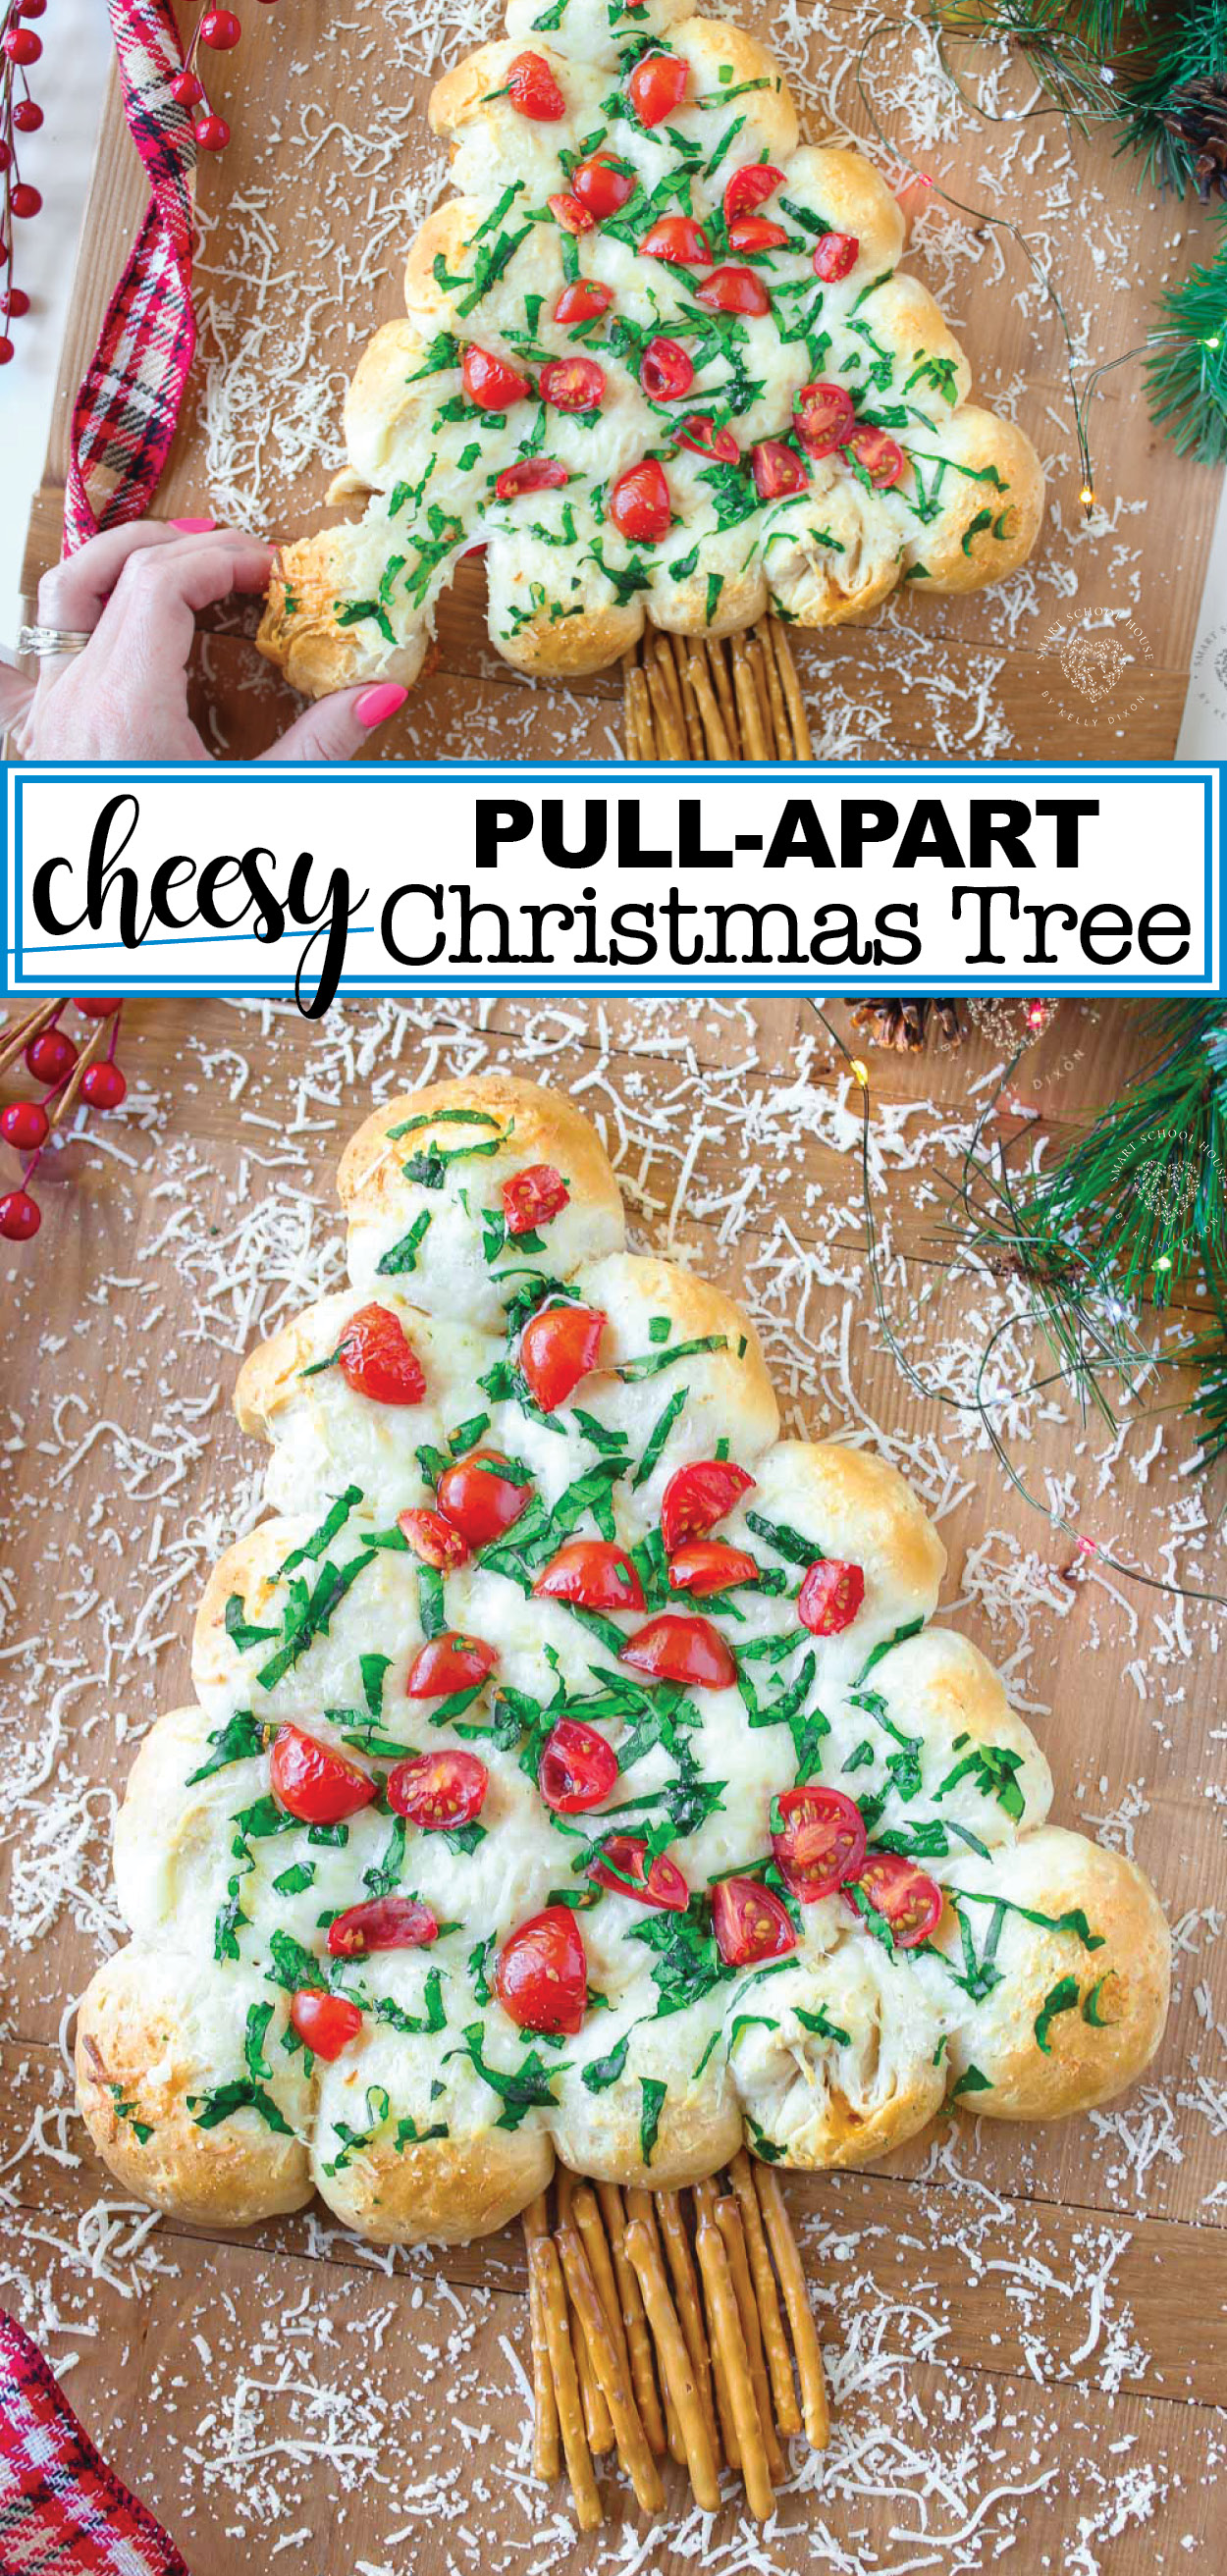 Cheesy Christmas Tree Pull-Apart Bread